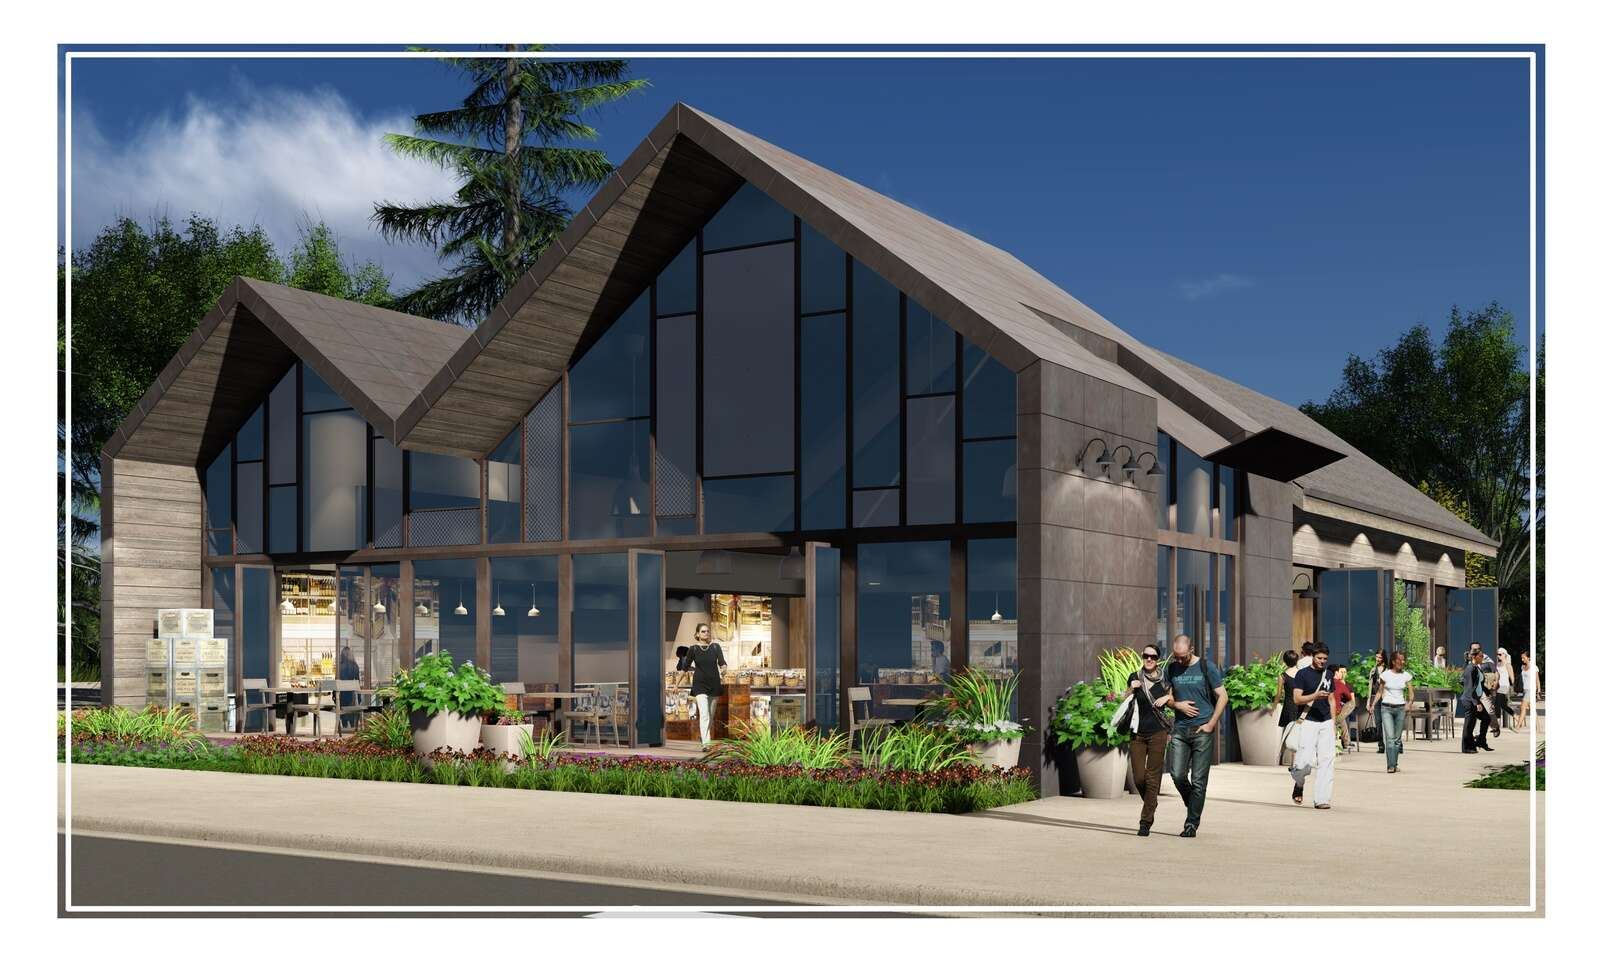 An architect's rendering of what a new bank will look like on Main Street.